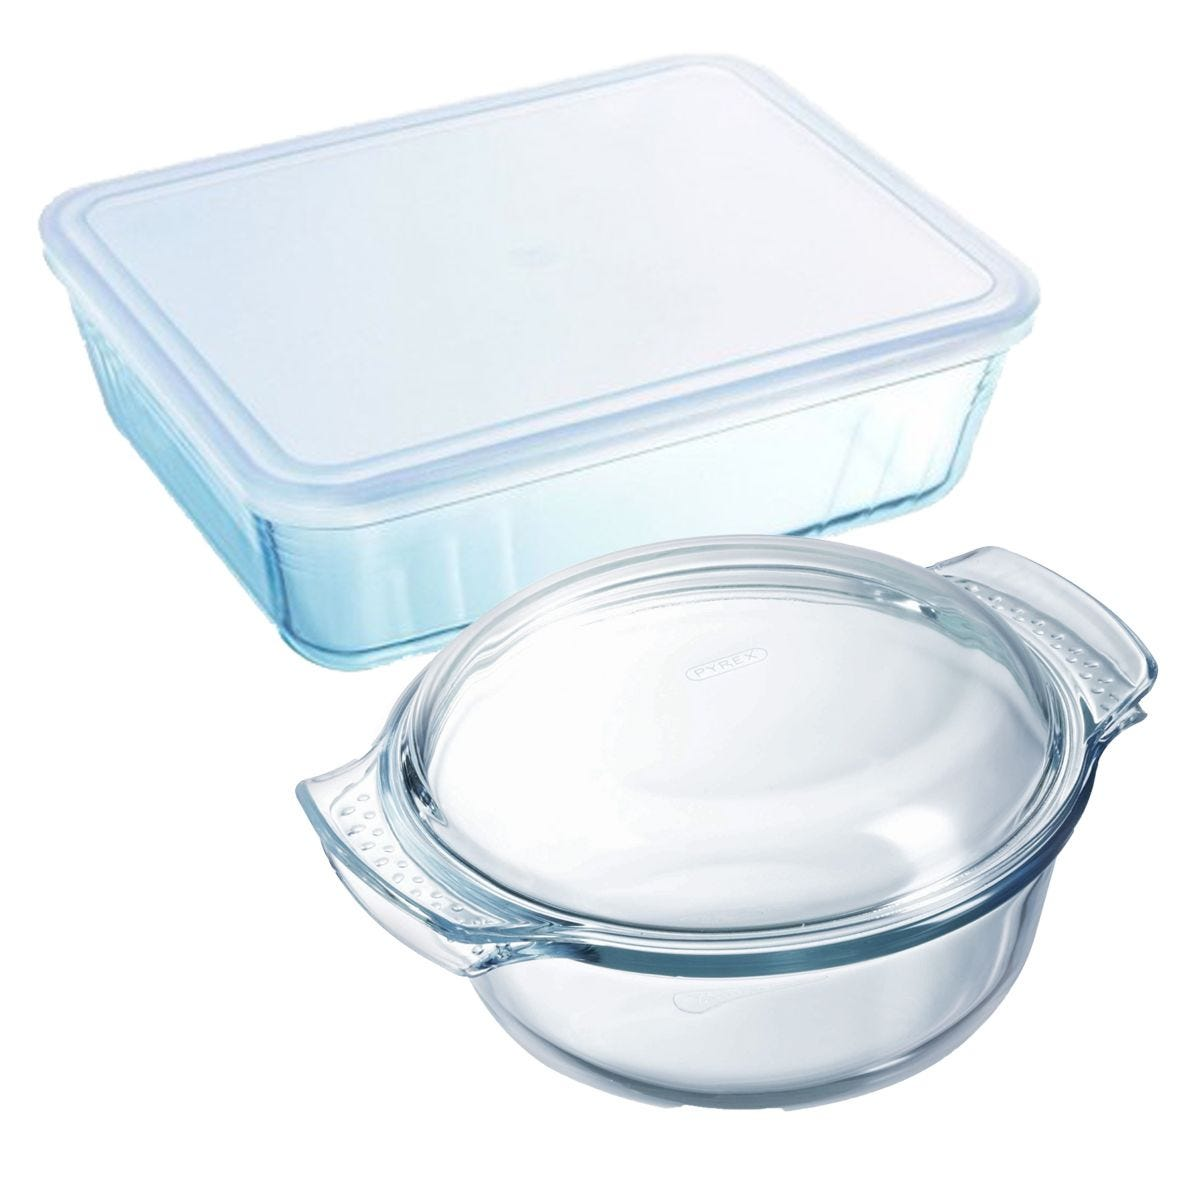 Pyrex Rectangular 2.6L Dish and Round 3.5L Casserole Dish